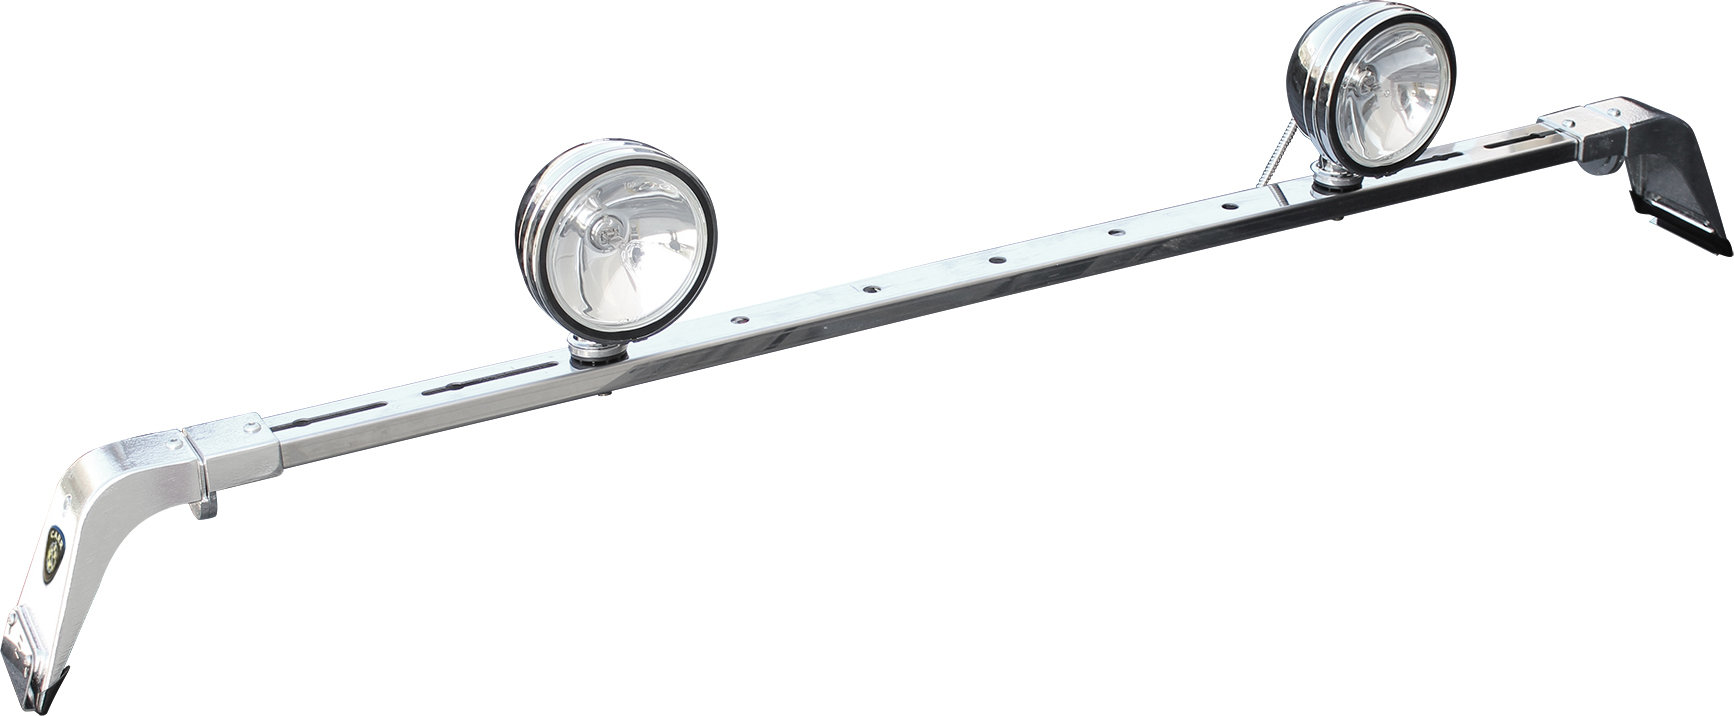 CARR Deluxe Fold Down Light Bar for 84-00 Jeep Cherokee XJ